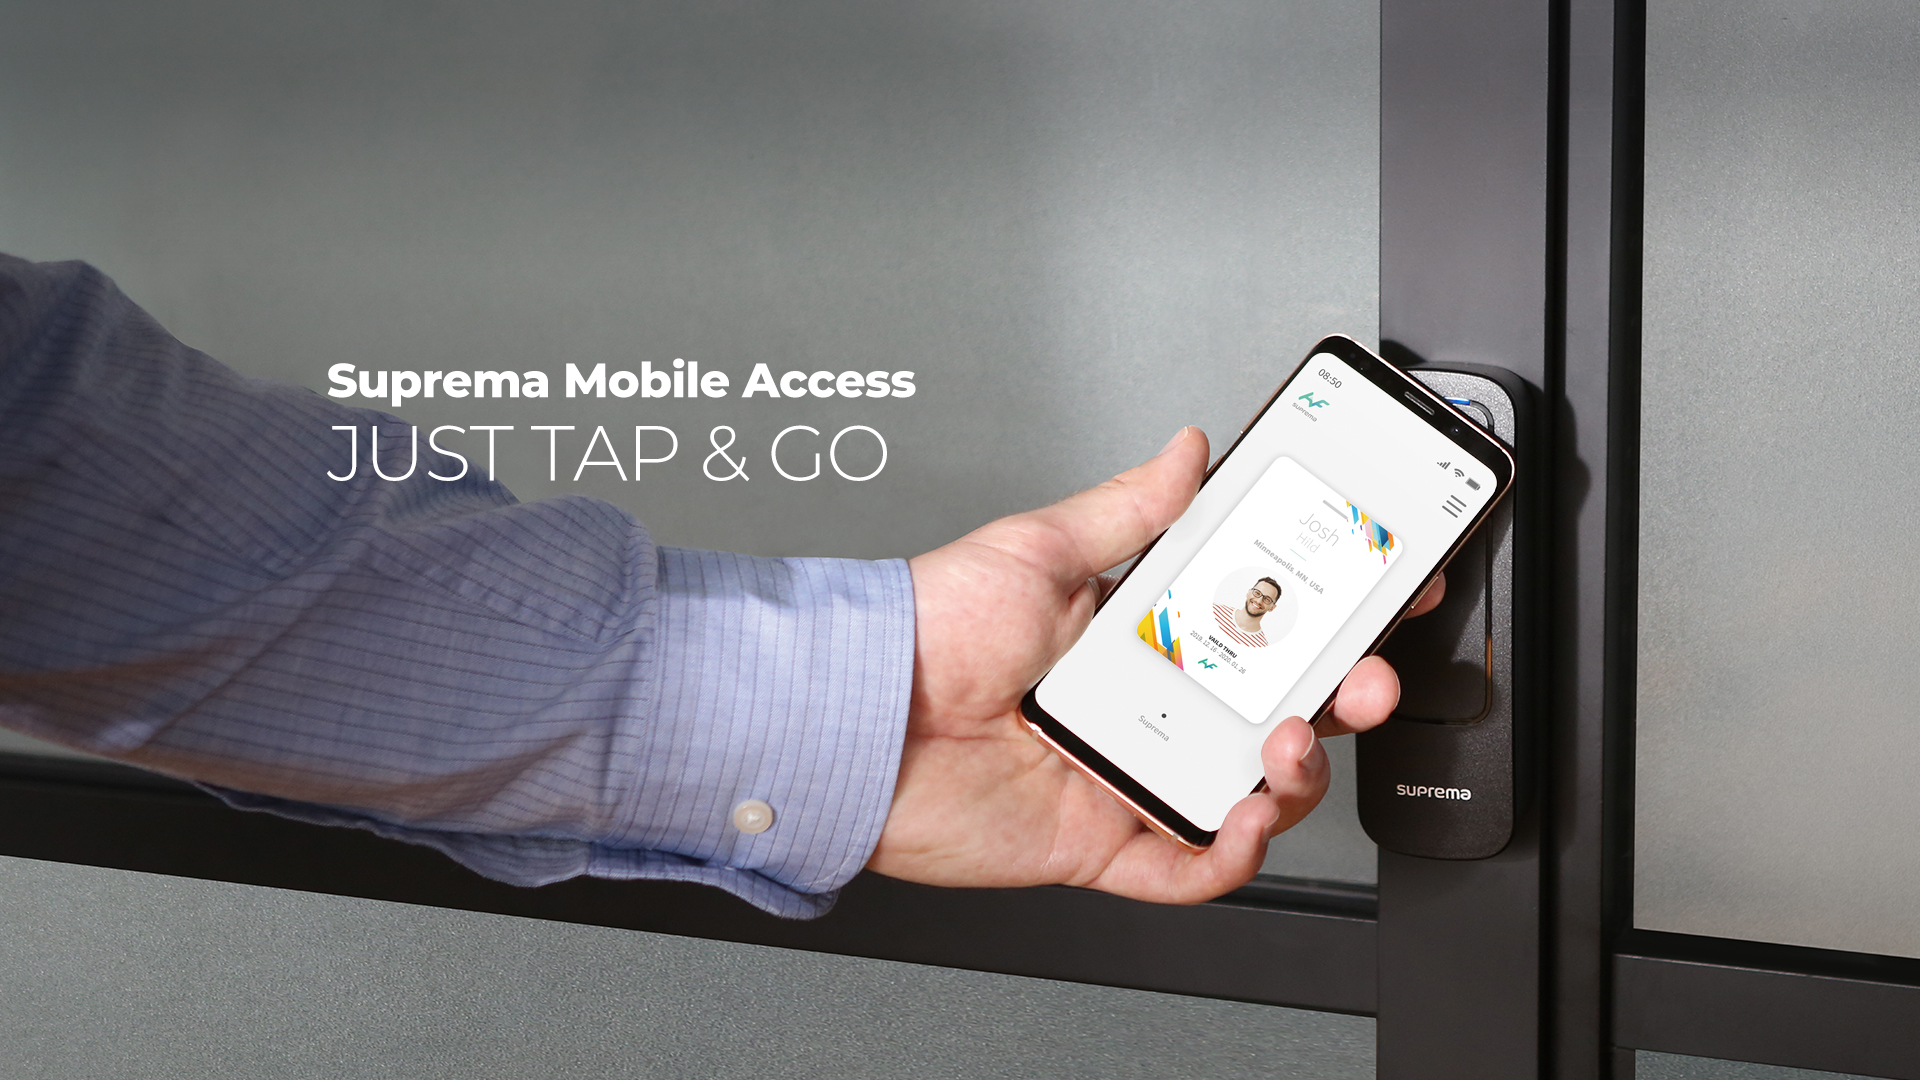 Suprema Mobile Access